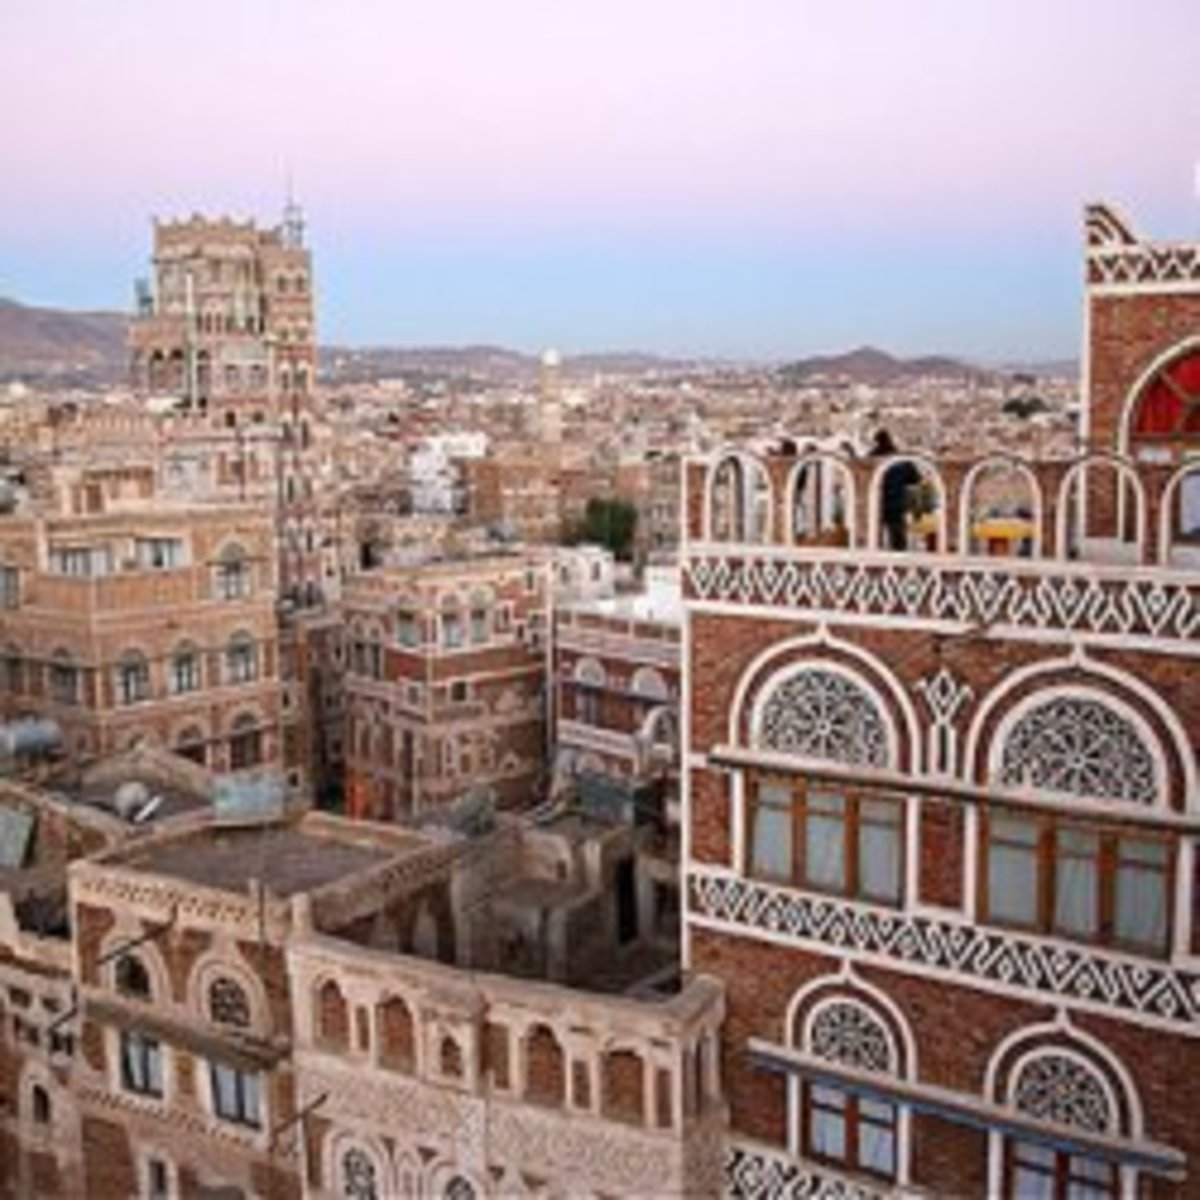 Image credit of Sana'a: http://www.ebusinessconsultant.co.uk/foreign-travel-advice/index.php?country=yemen